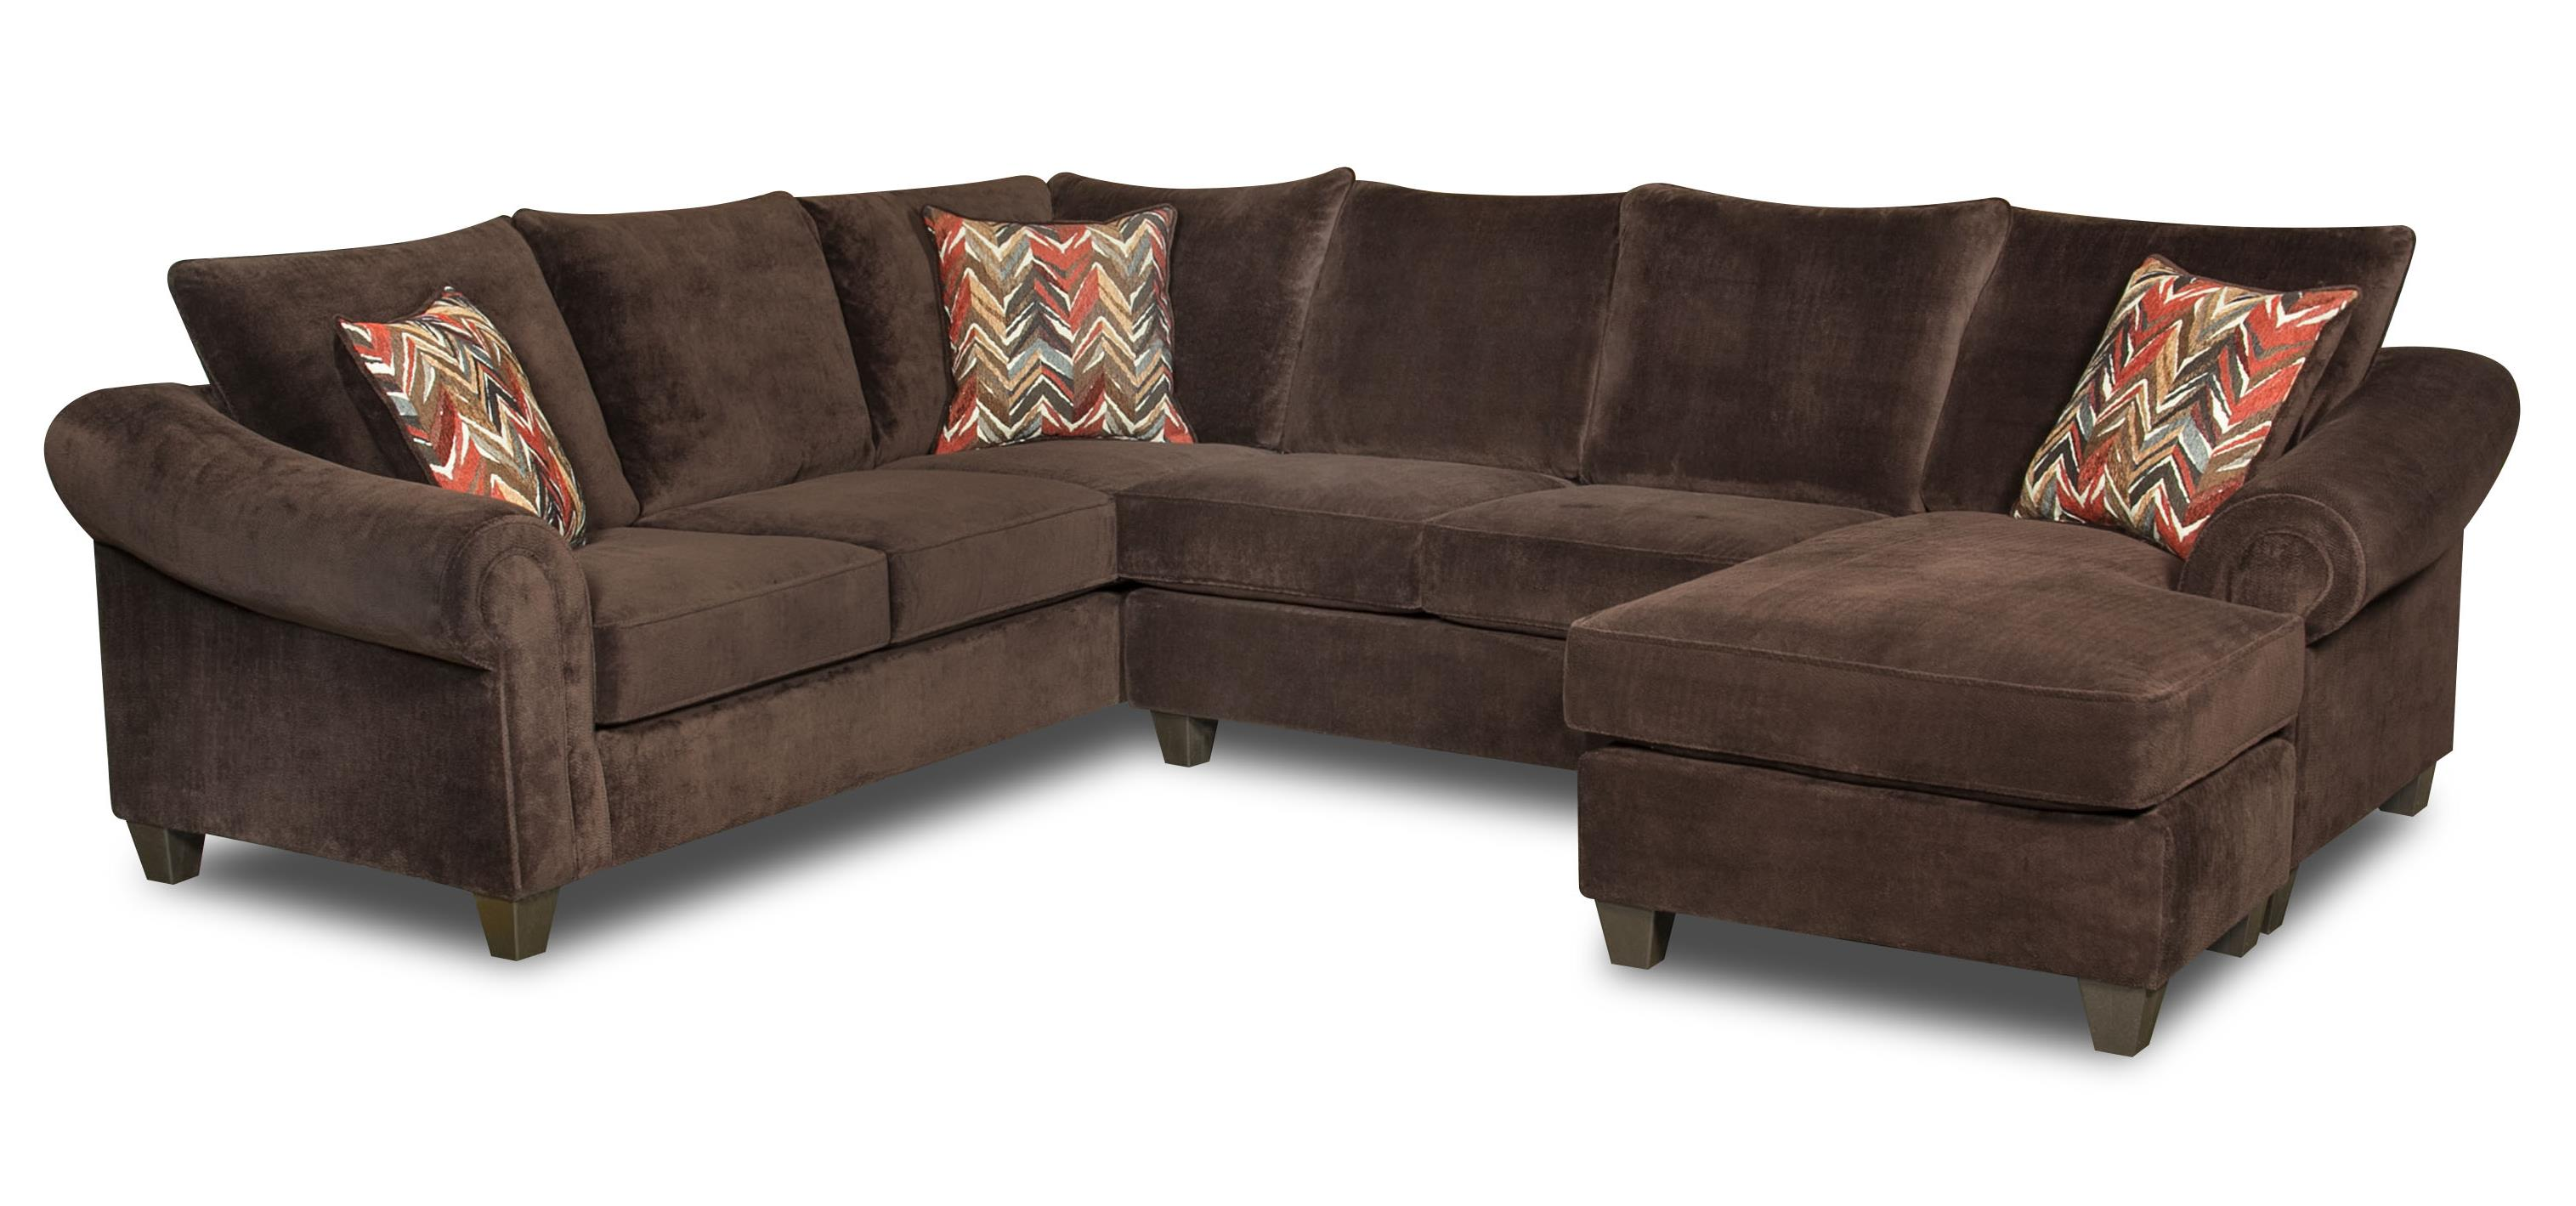 Furniture upholstery group bay city saginaw - American Furniture 2800 Sectional Sofa Item Number 2810 2830 2450